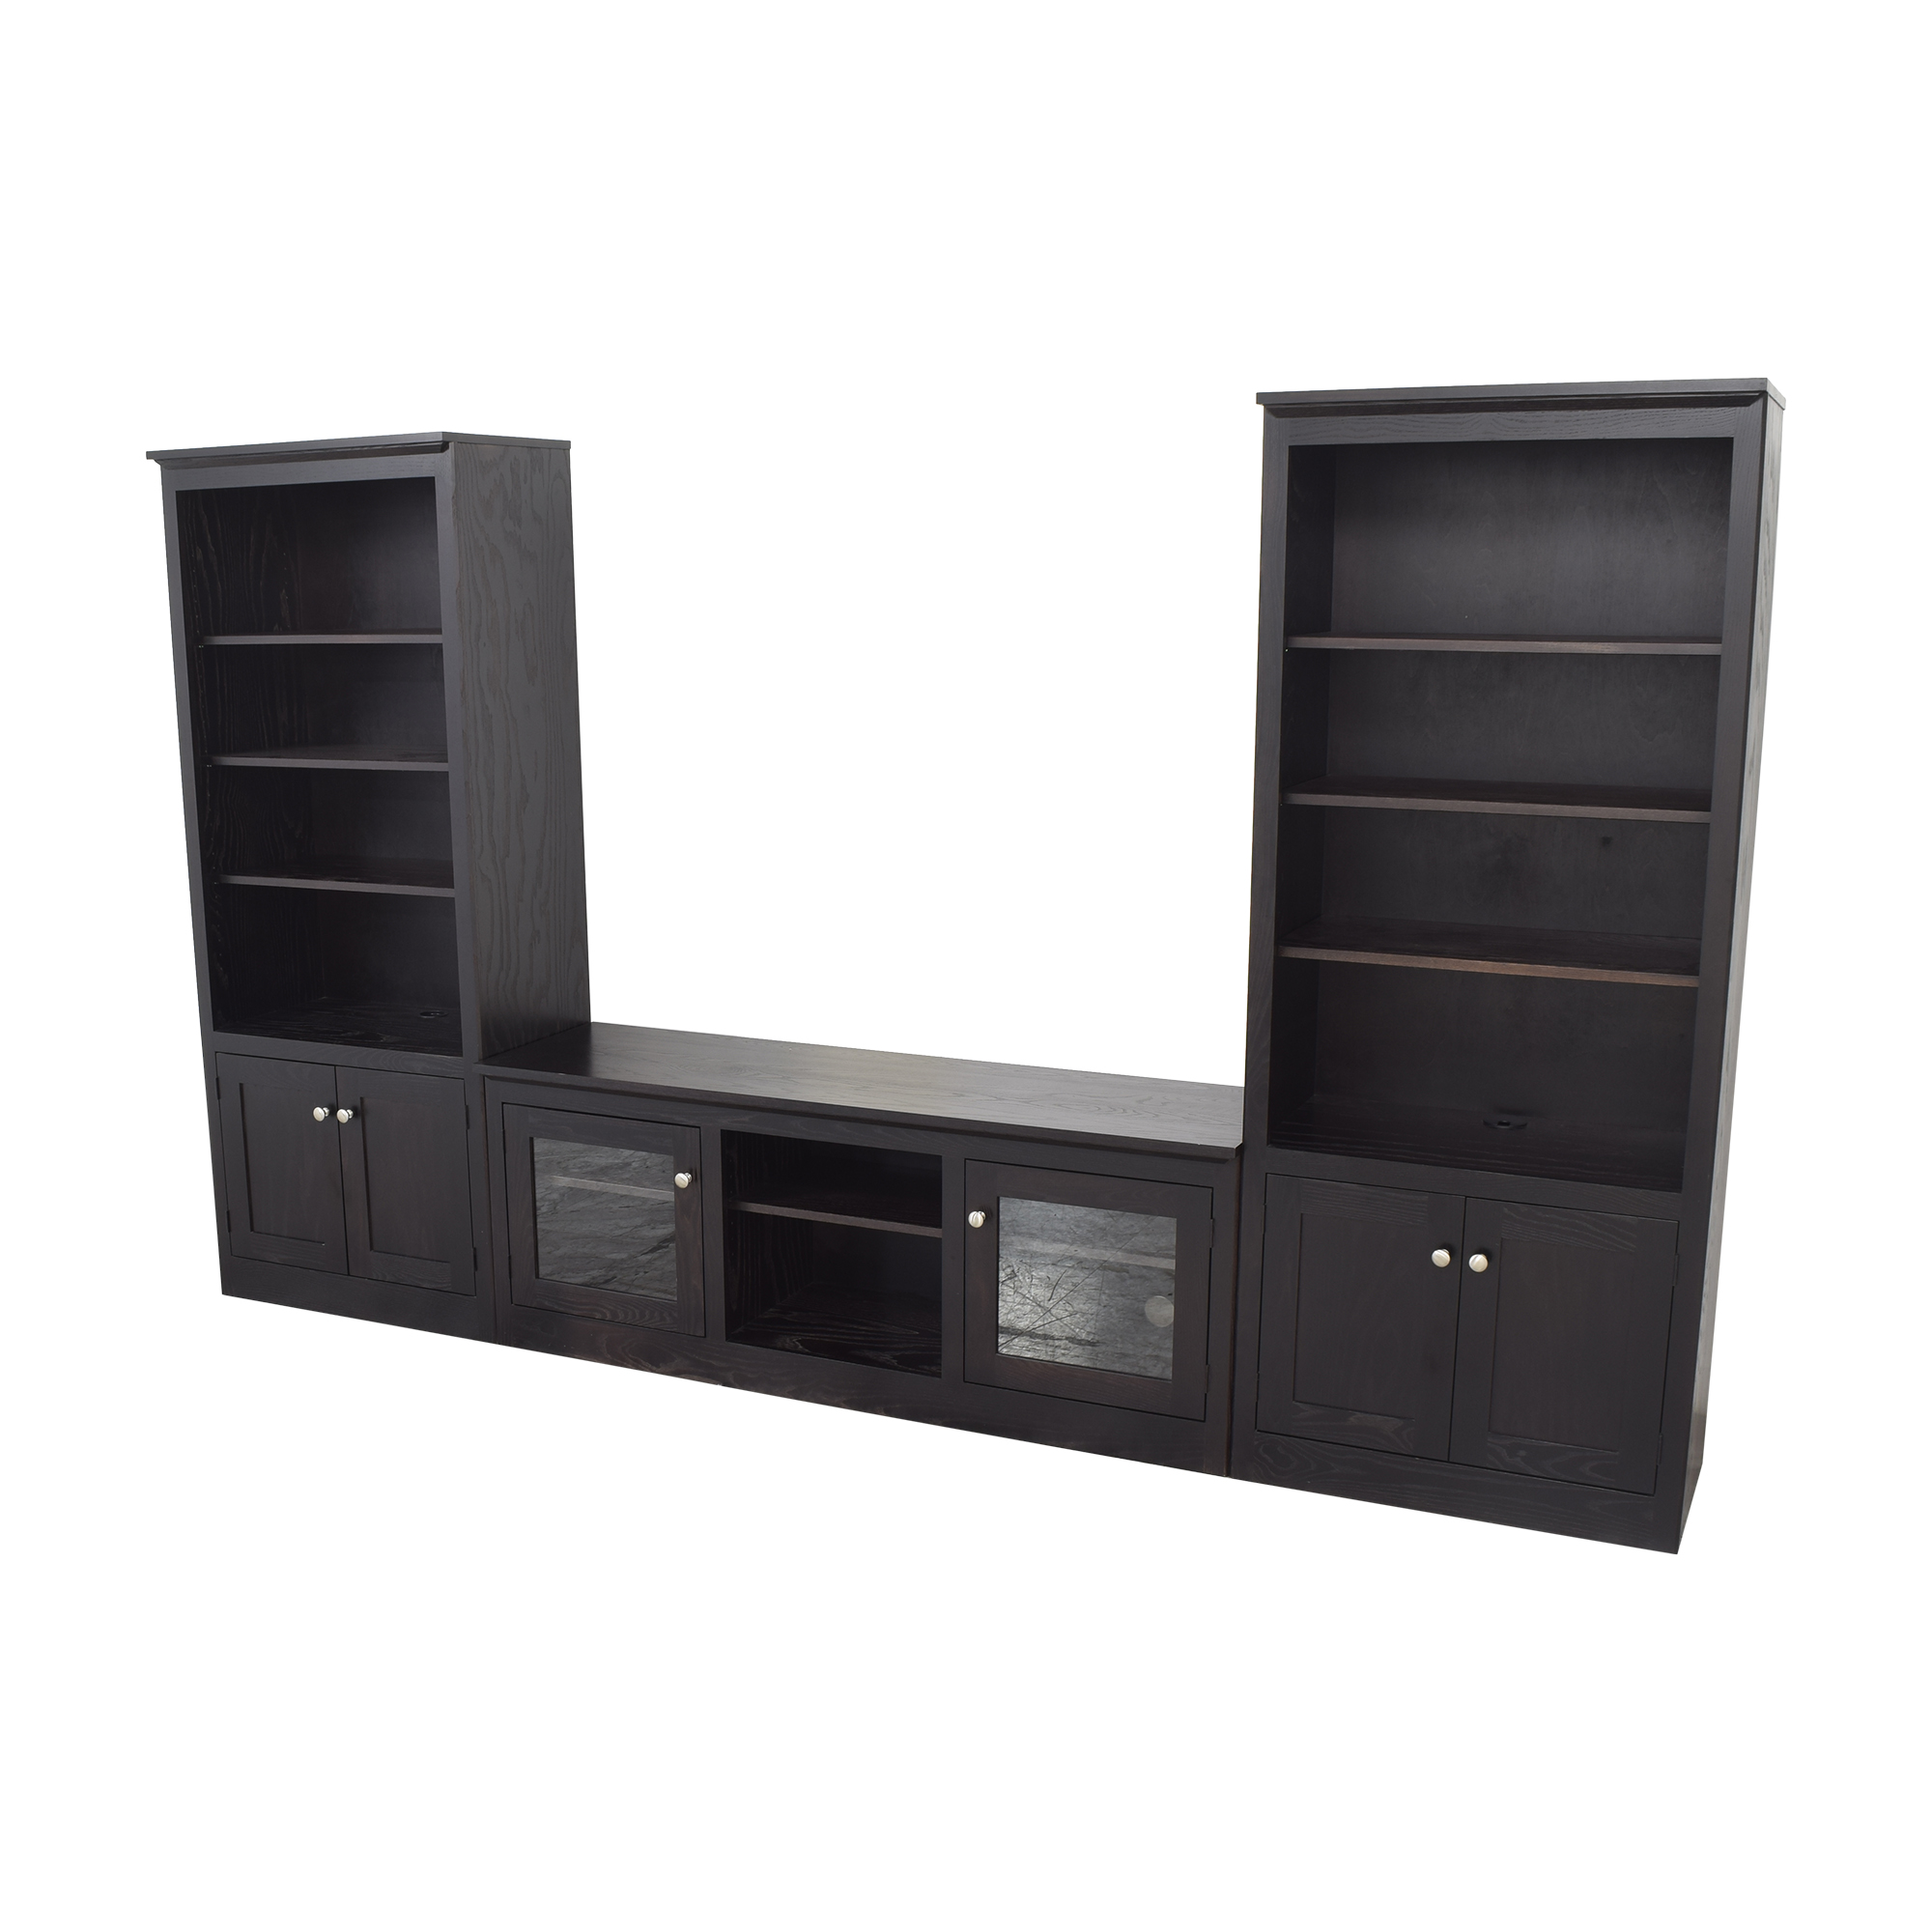 Crate & Barrel Crate & Barrel Media Center and Towers for sale